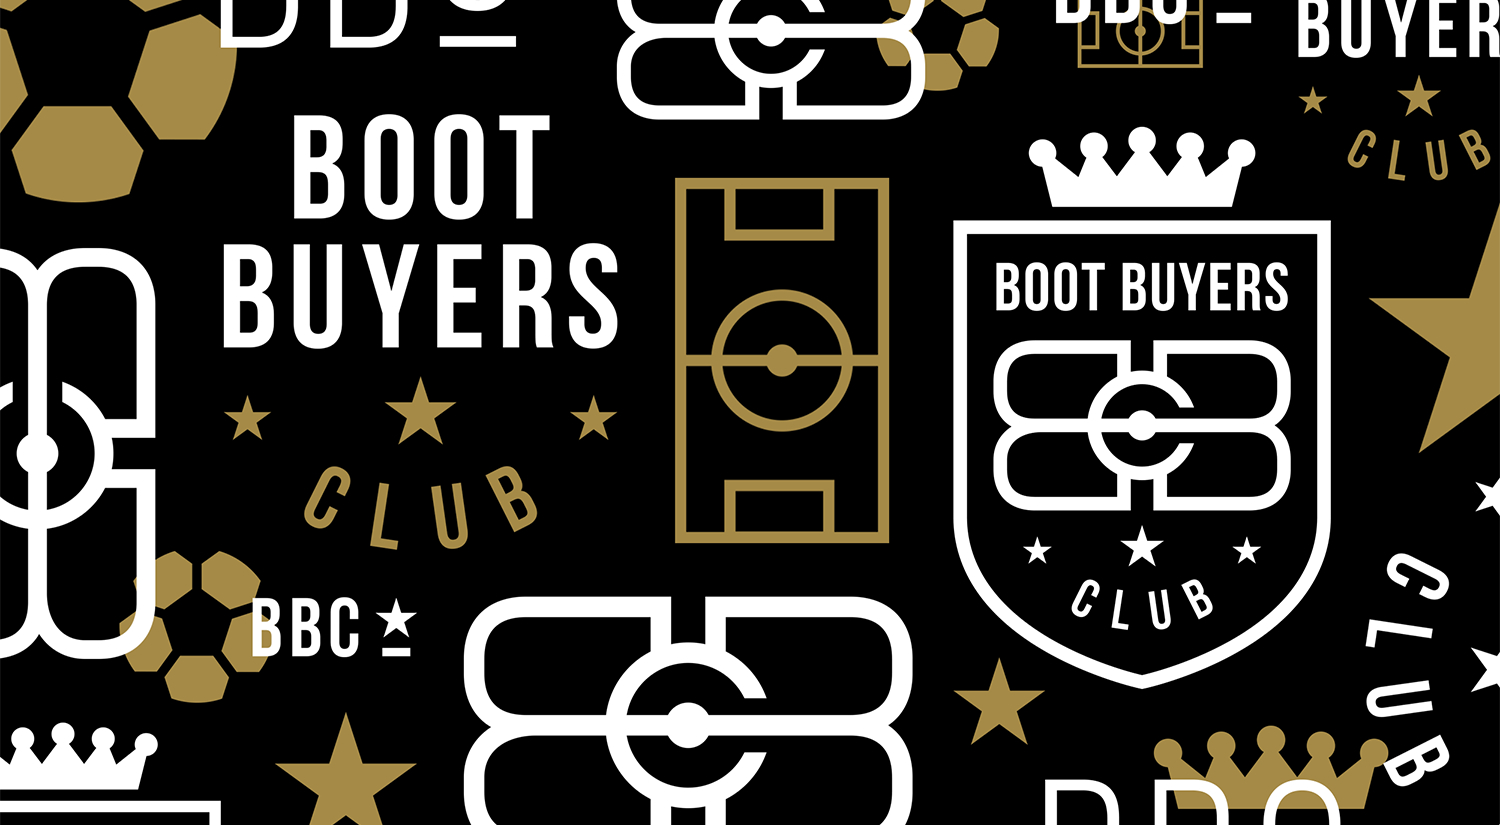 Boot-Buyers-Club-Pattern-Design-Freelance-Graphic-Designer-Margate-Kent-Crop